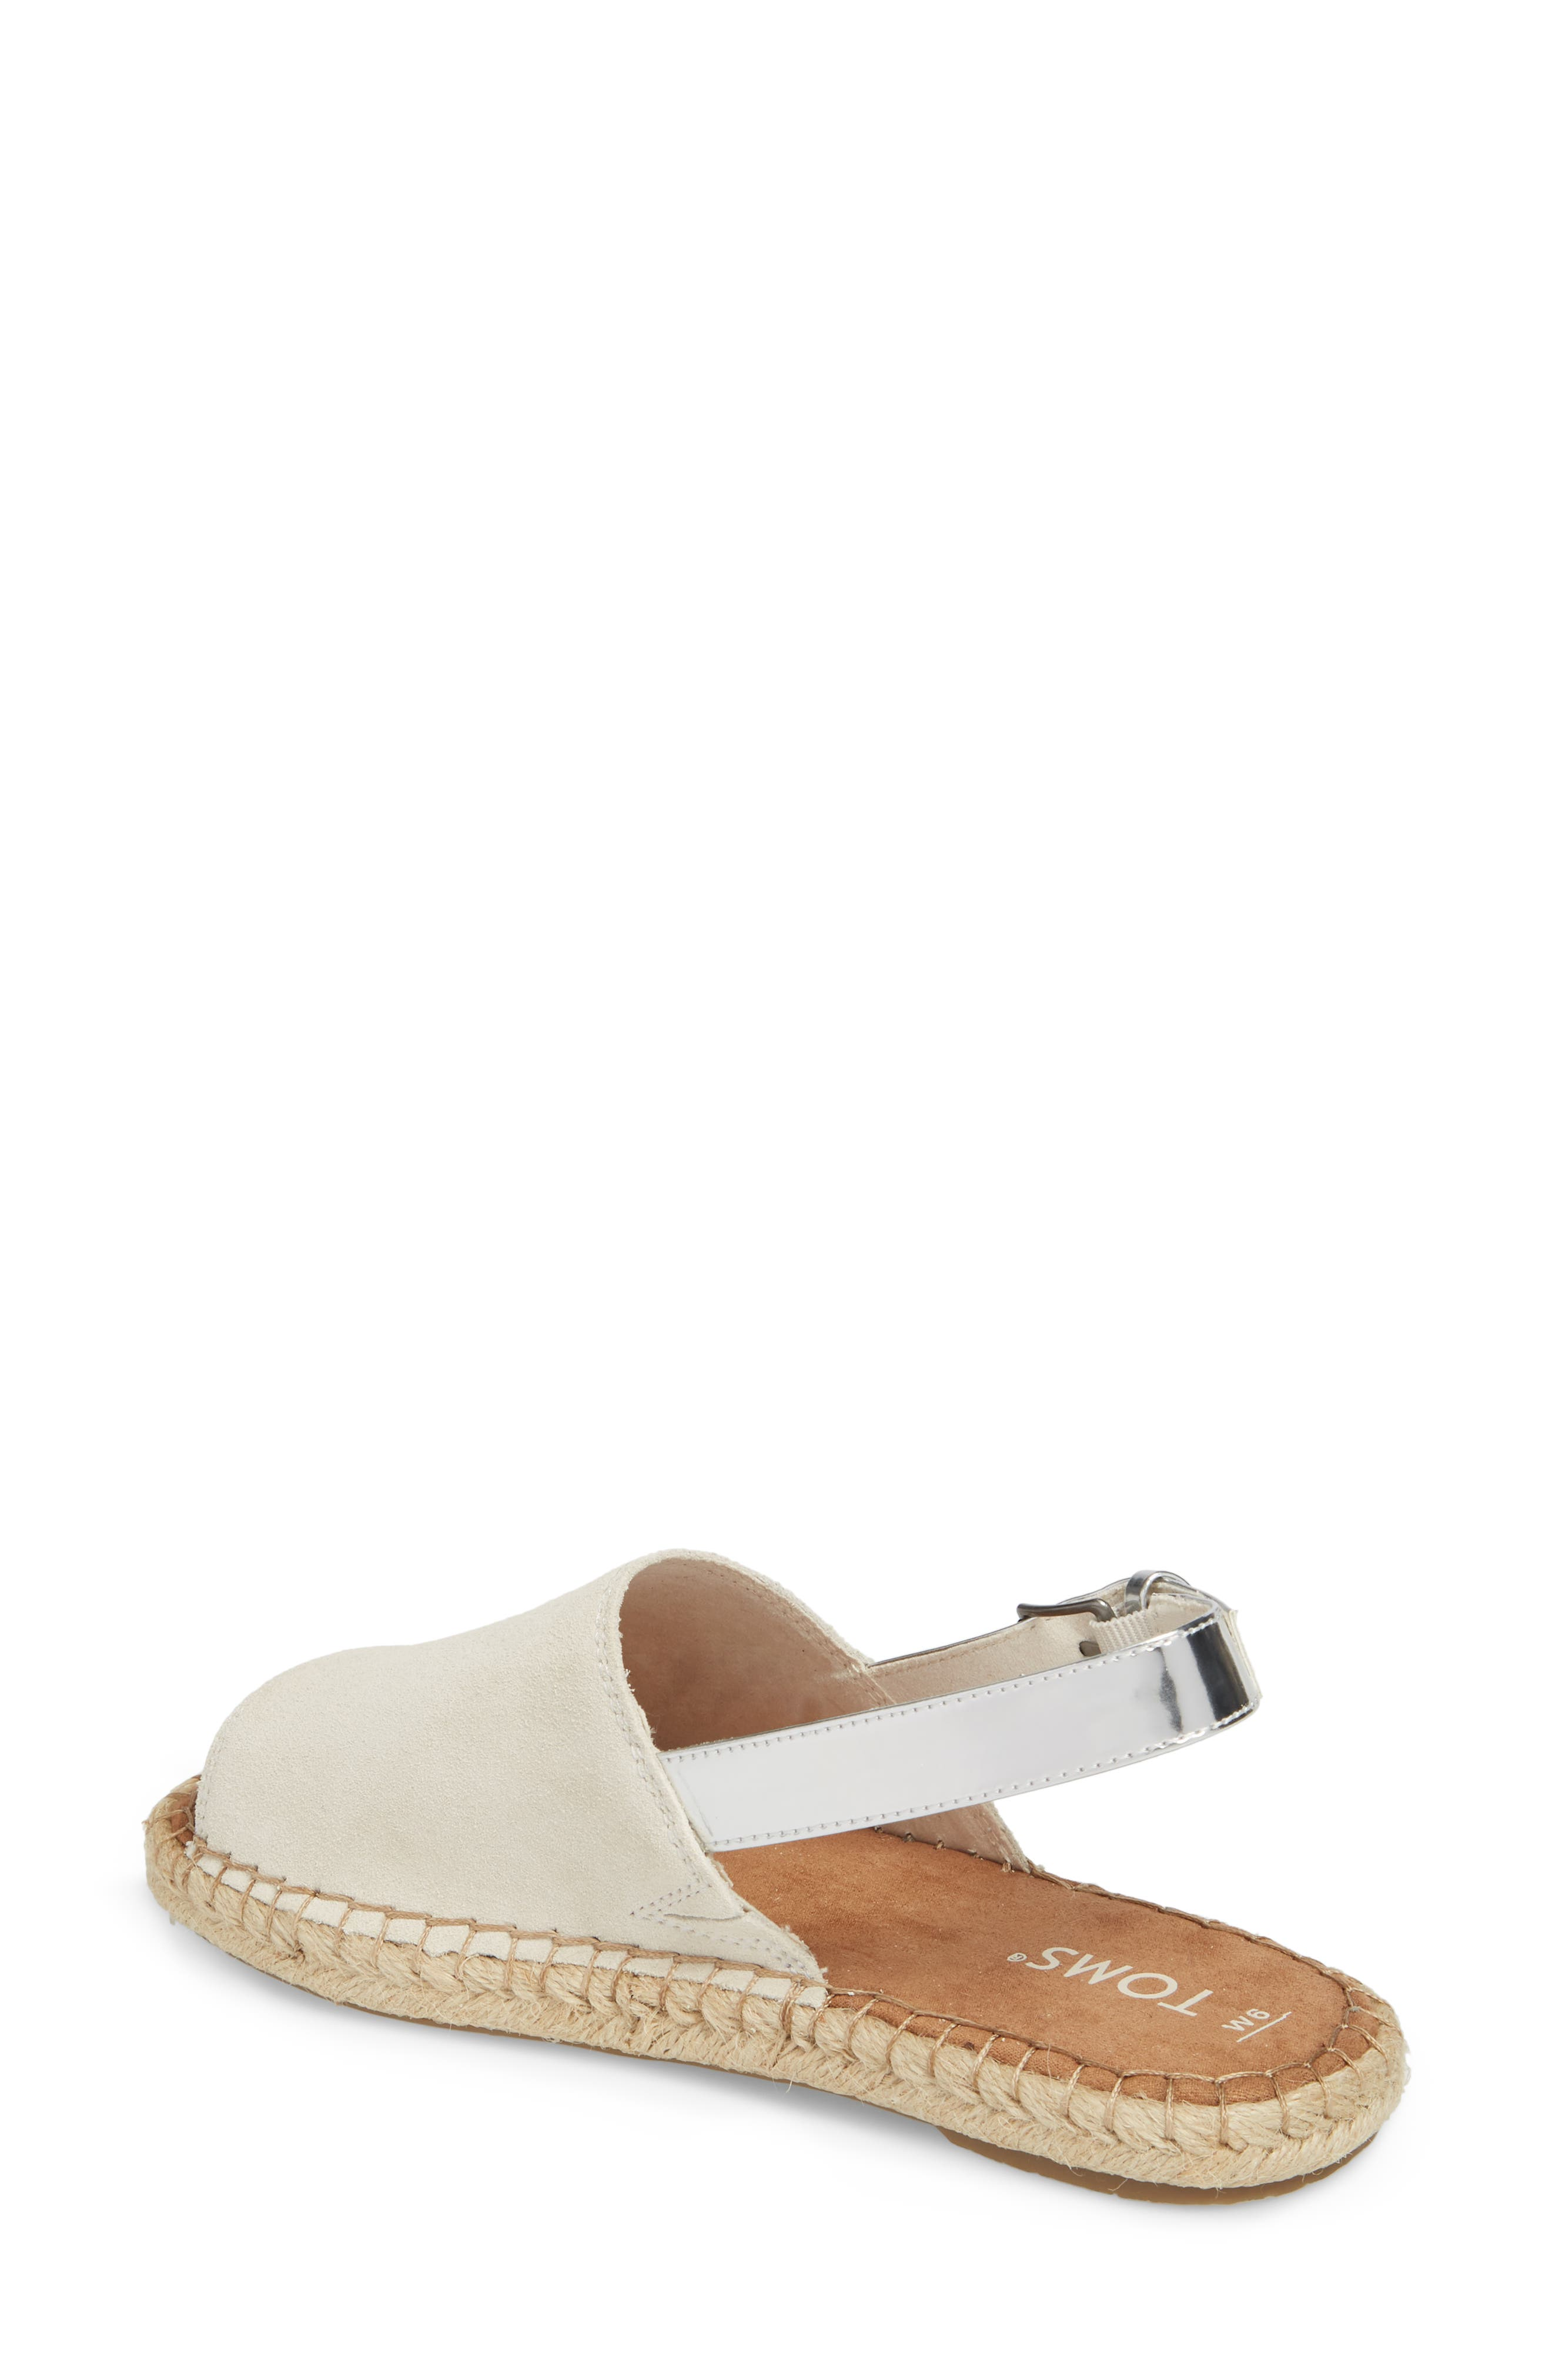 Clara Slingback Sandal,                             Alternate thumbnail 2, color,                             Birch Suede